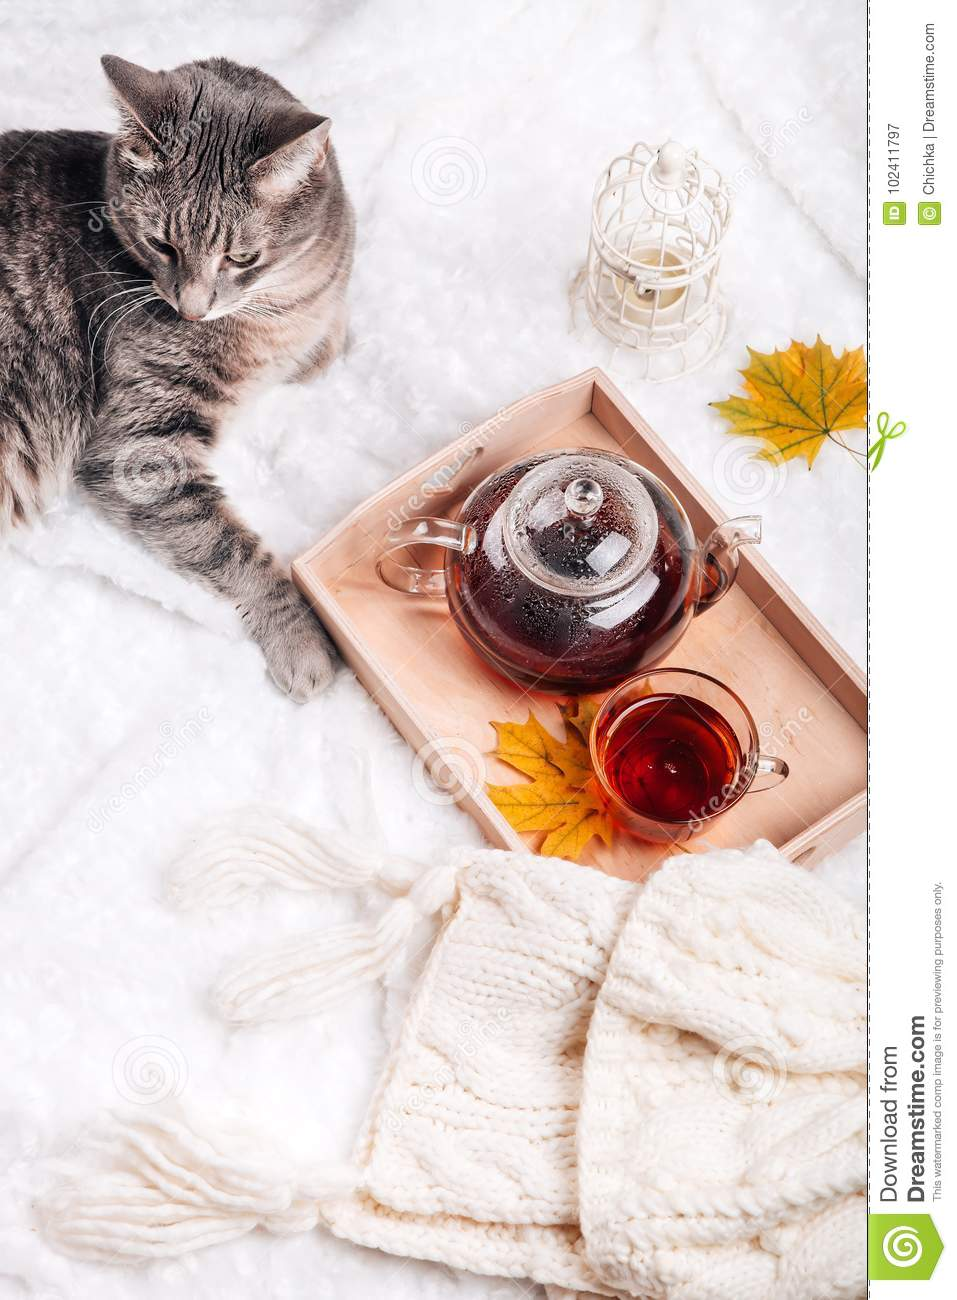 Cute Kitten Relaxing On Warm Sweater By Autumn Rustic Home Decor